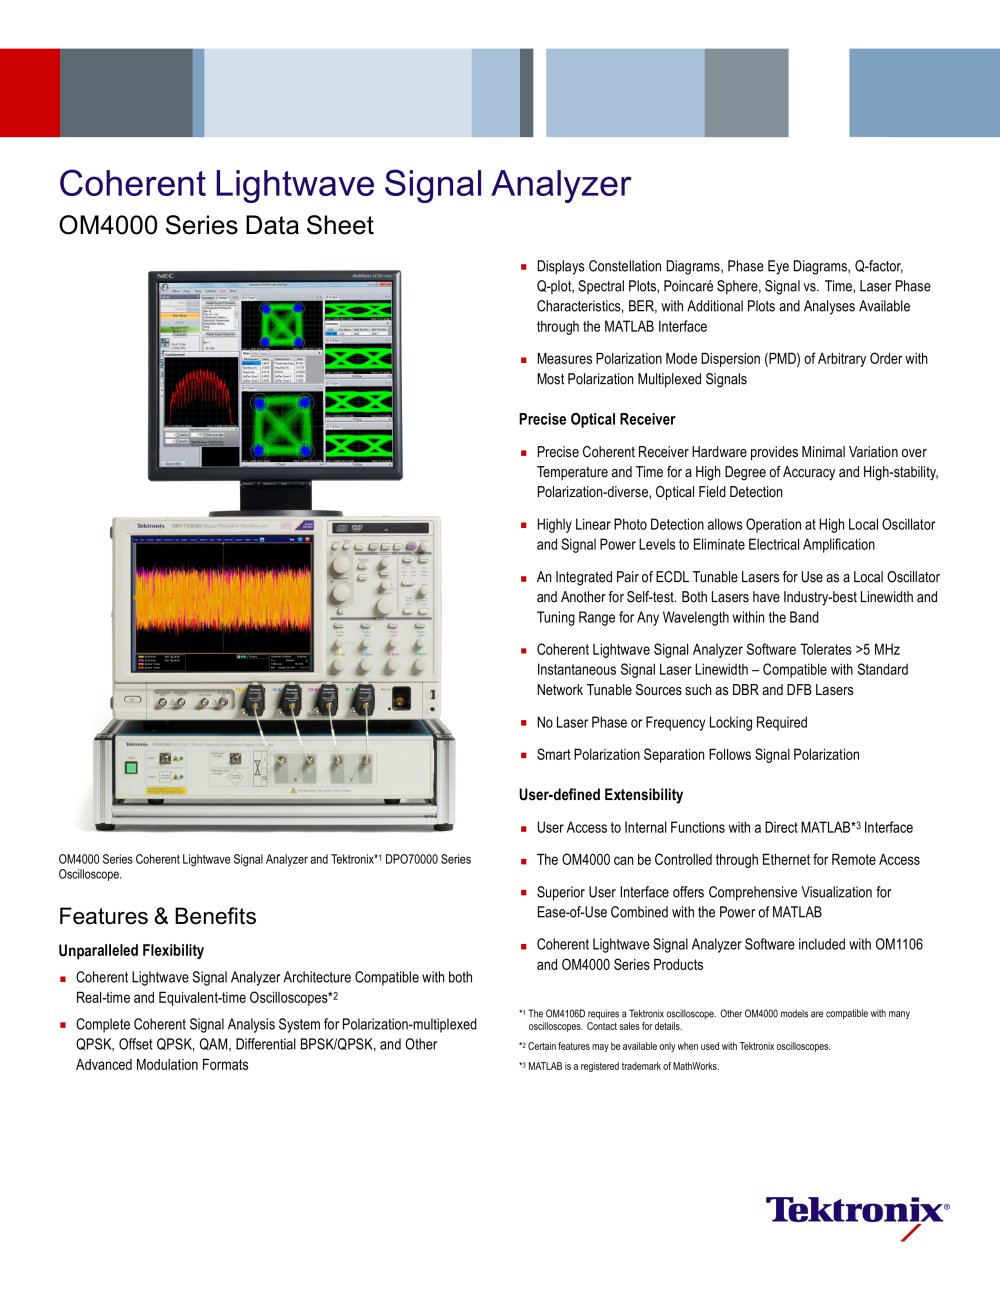 Coherent lightwave signal analyzer om4000 series tektronix pdf coherent lightwave signal analyzer om4000 series 1 16 pages ccuart Images